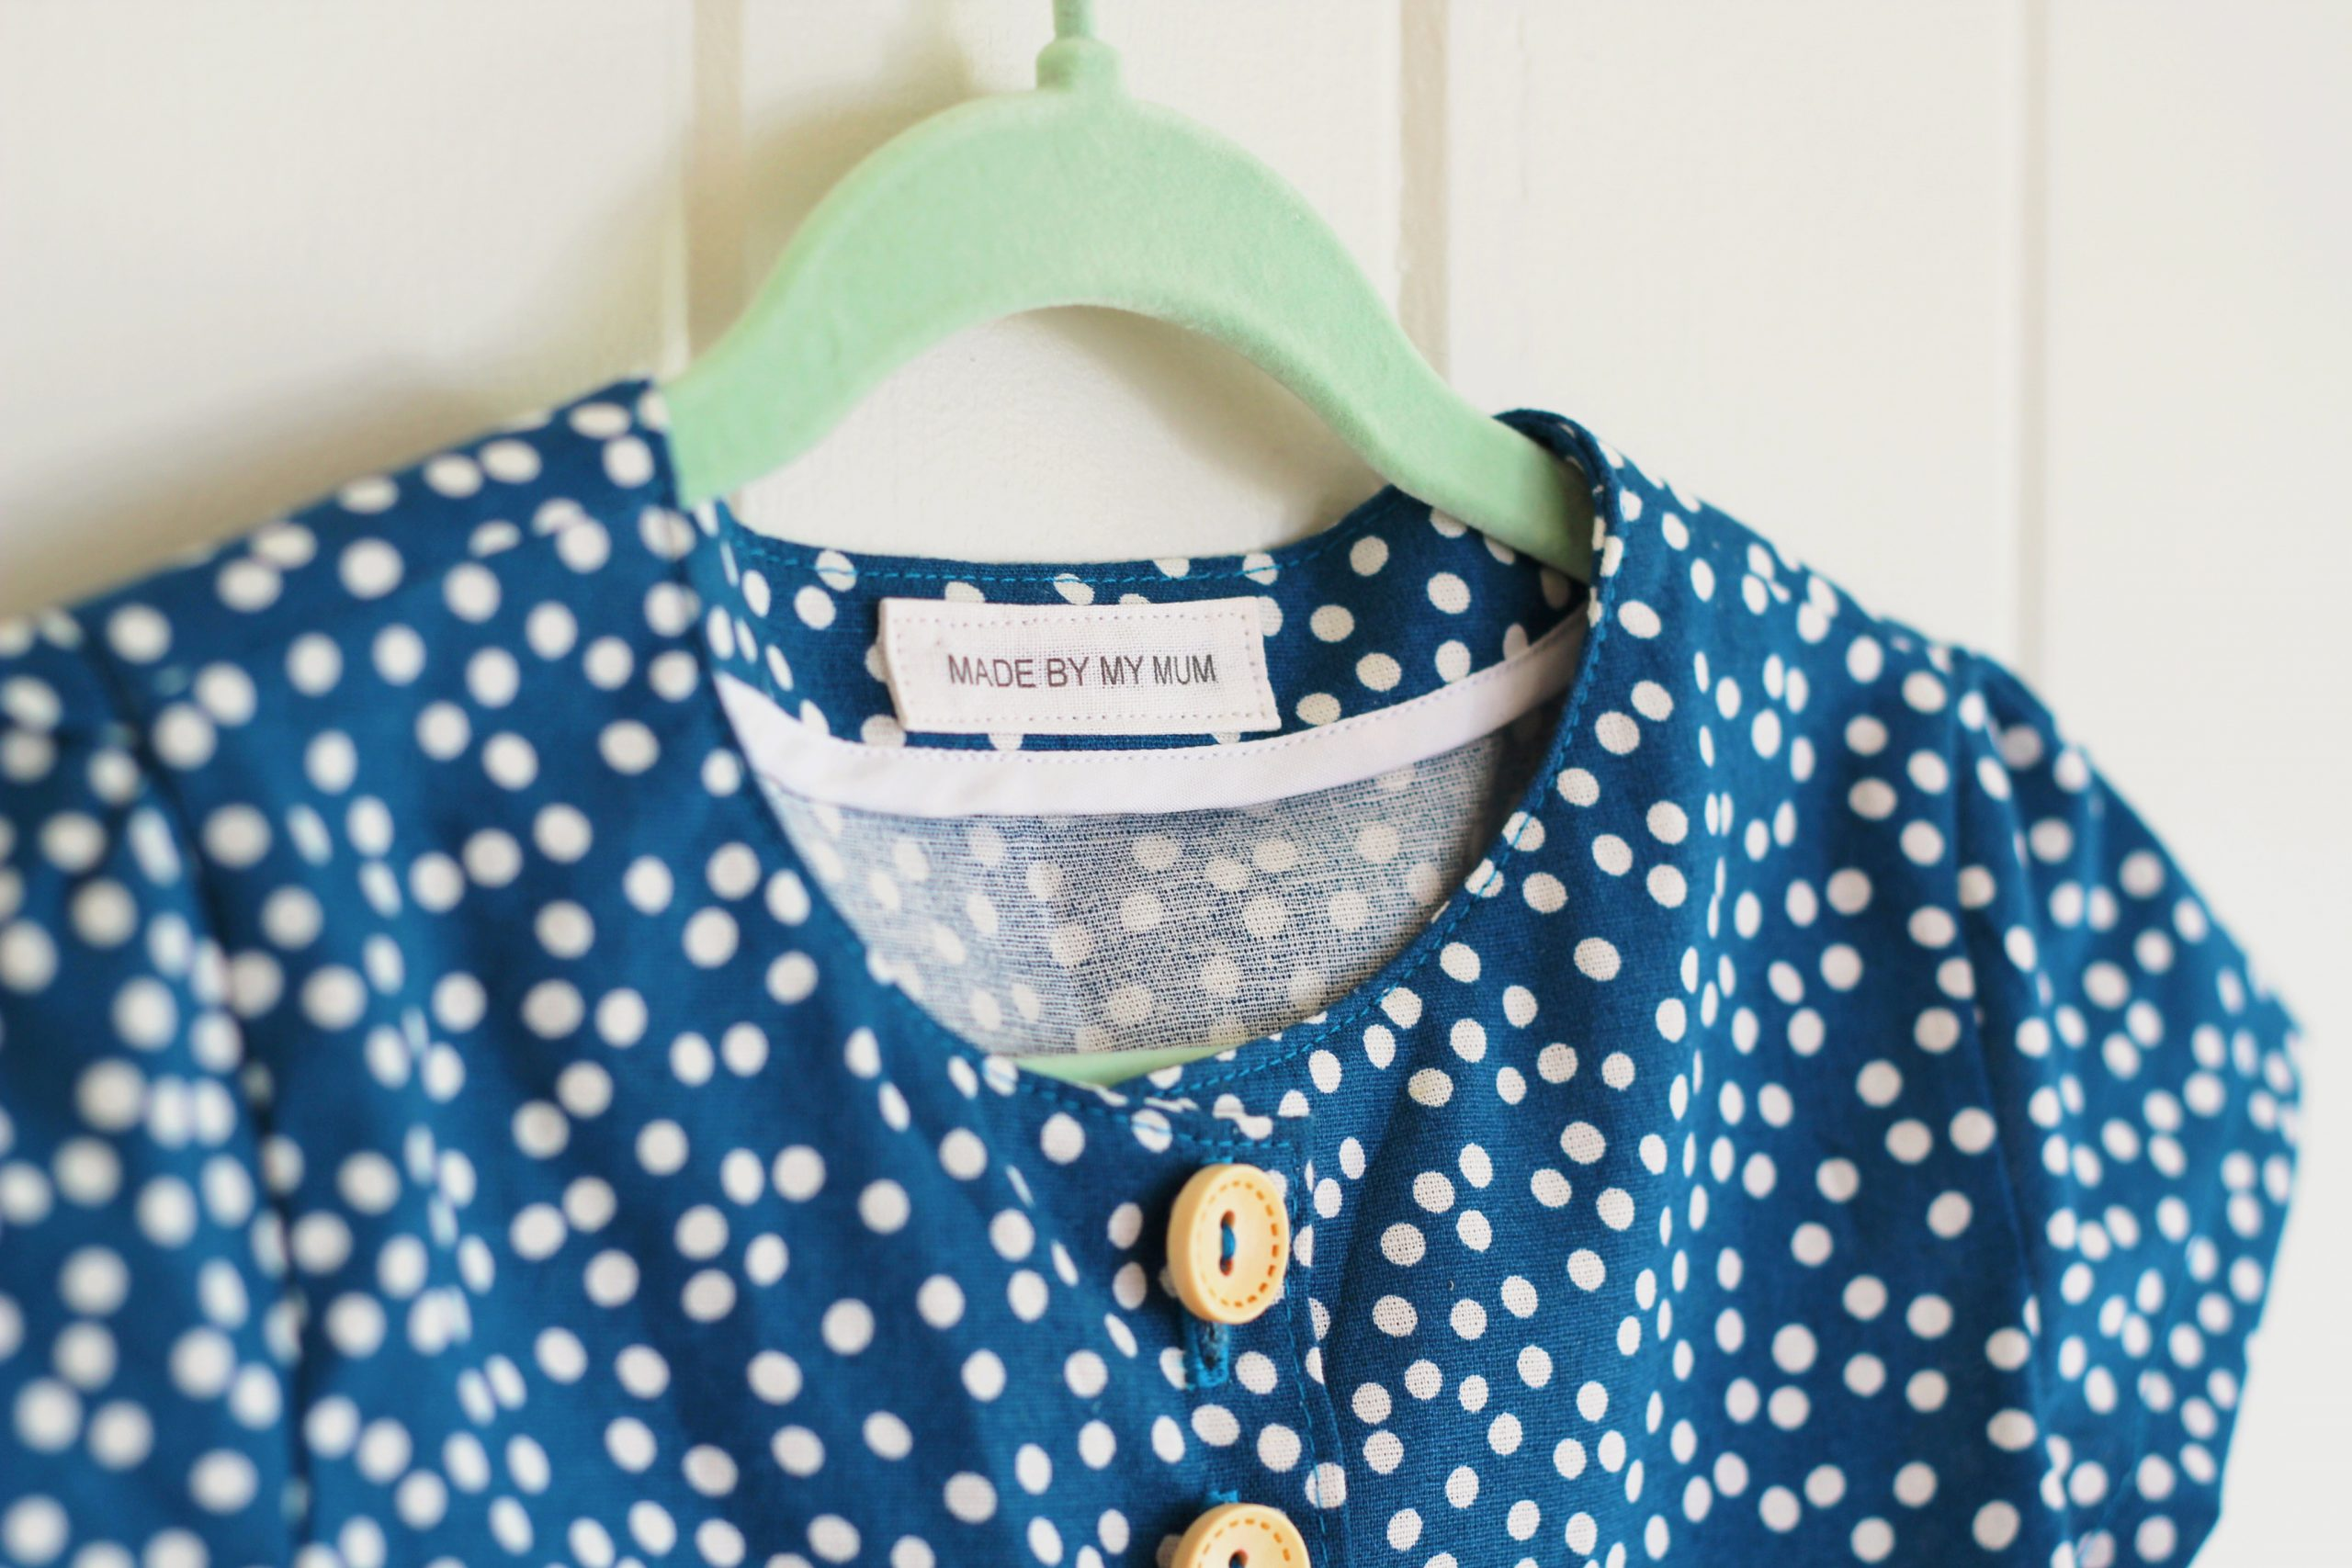 How to make your own sewing labels